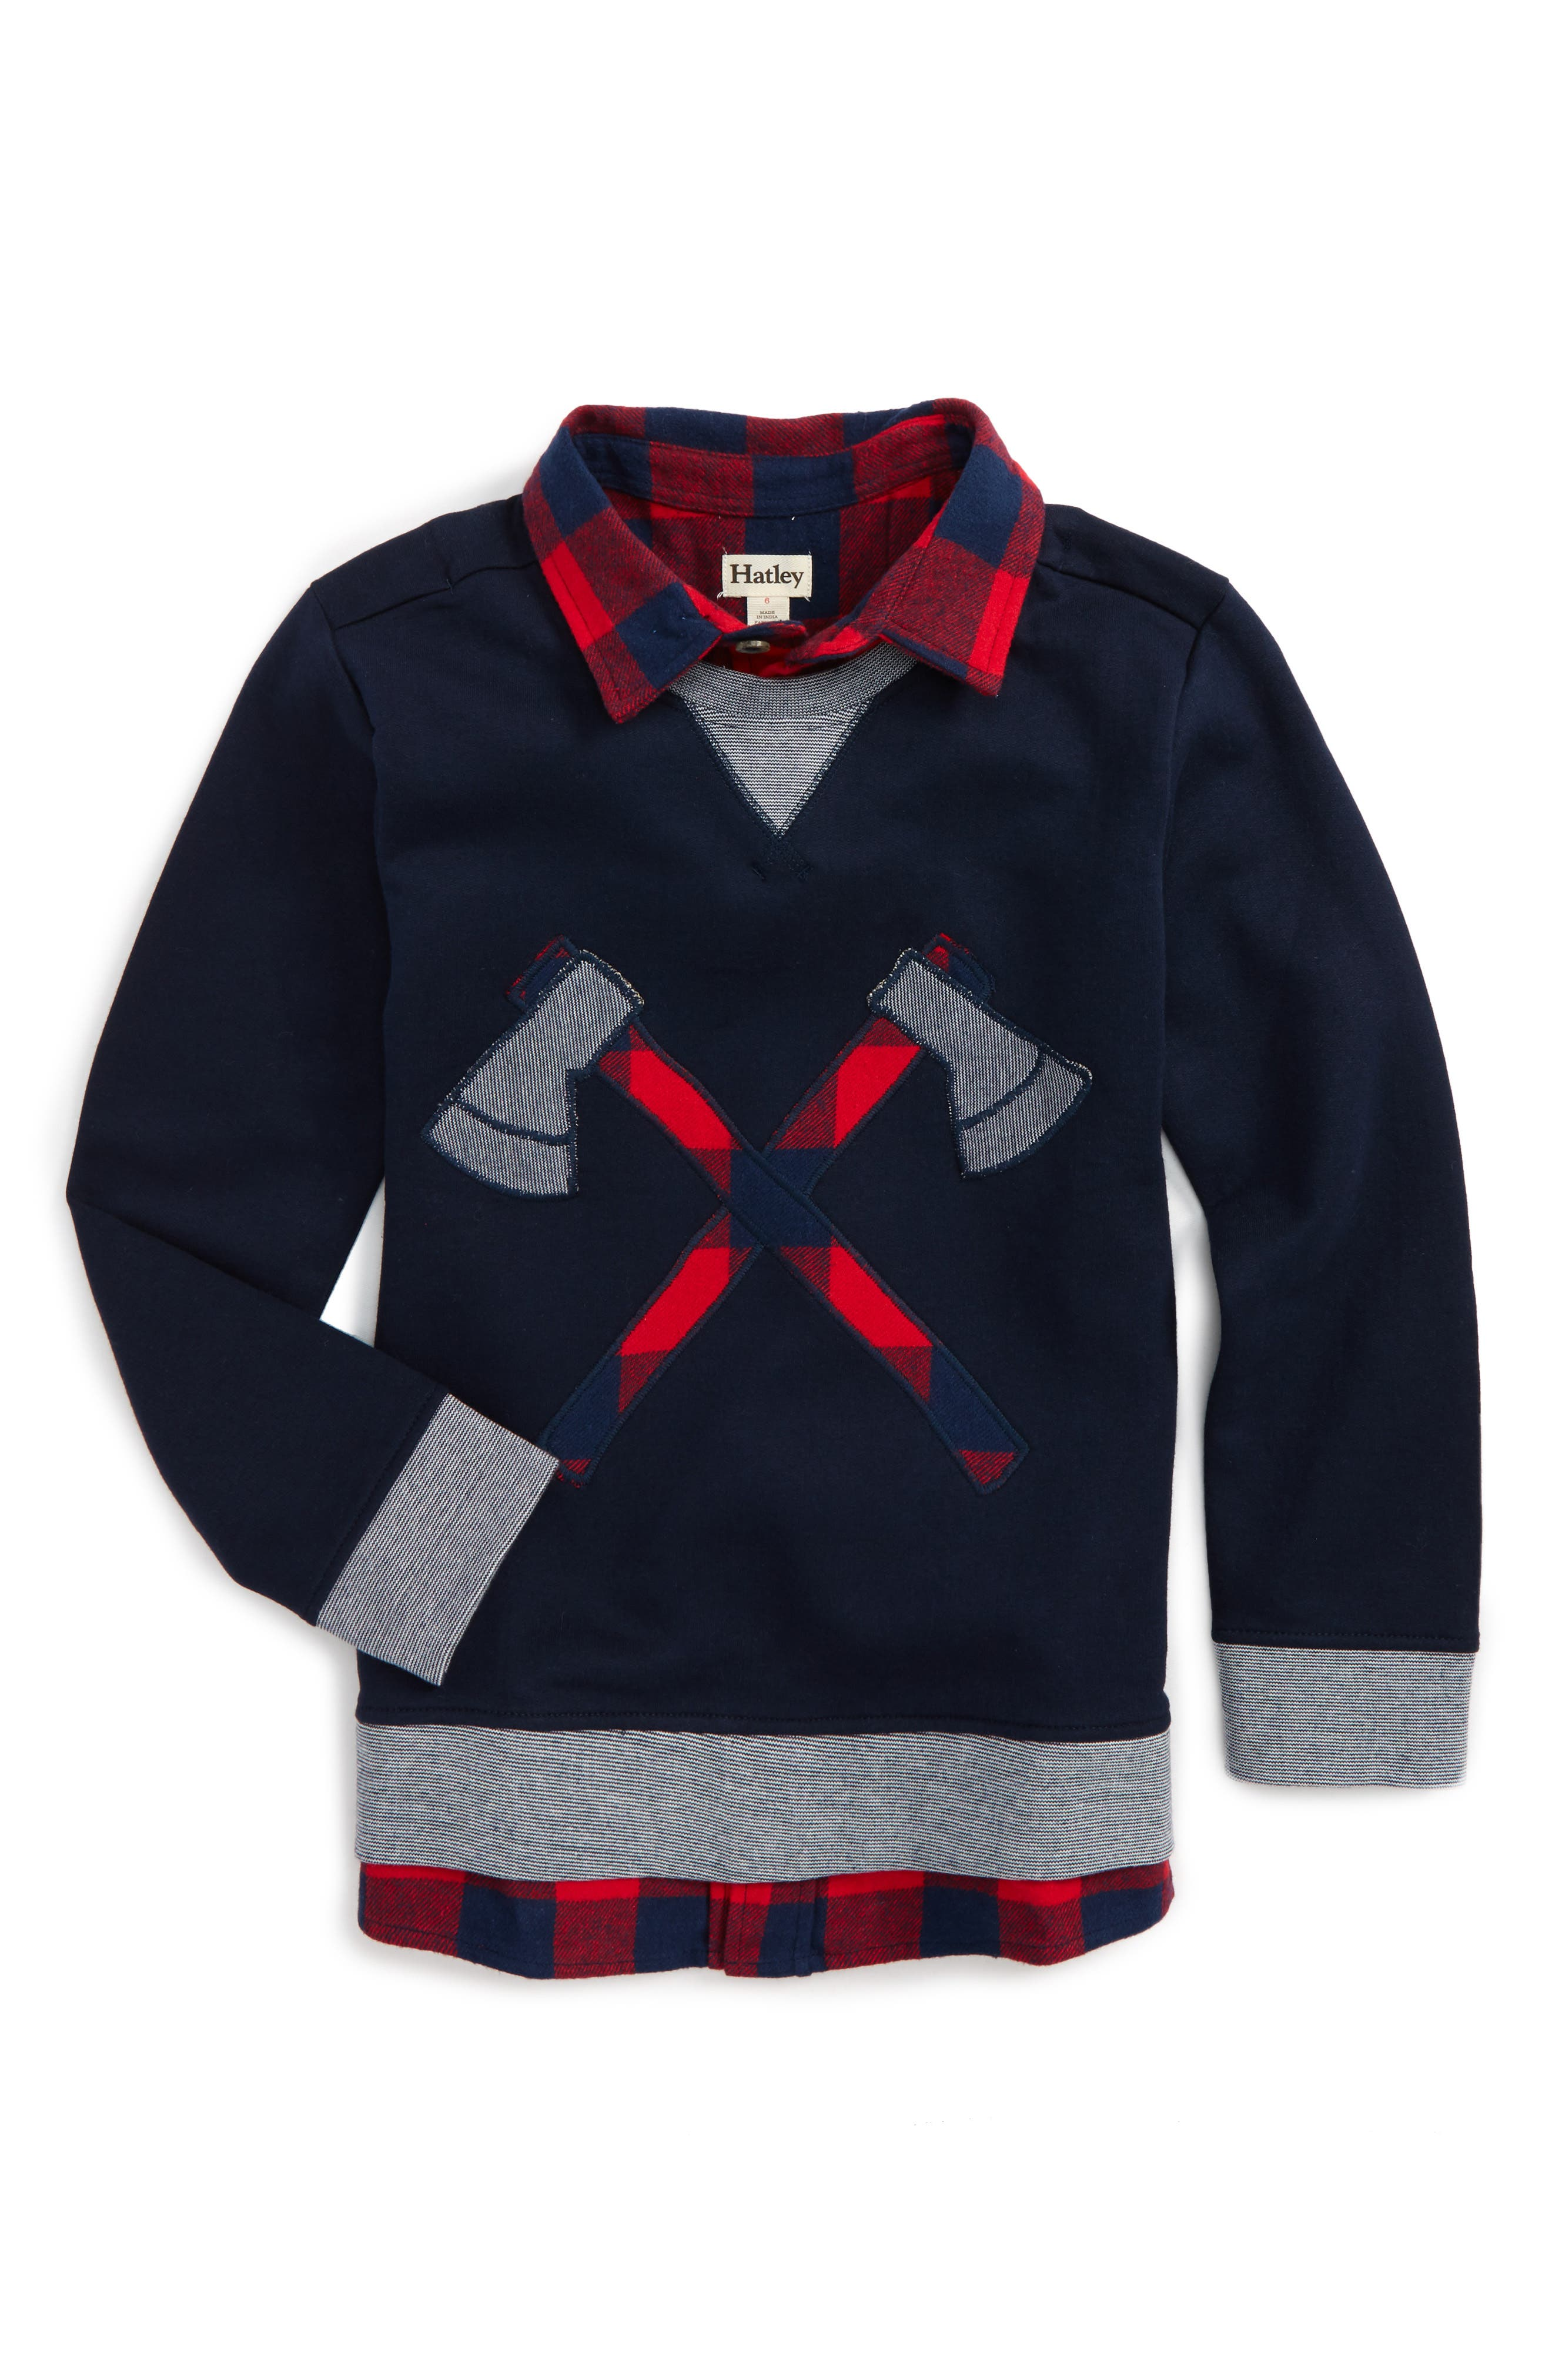 Alternate Image 1 Selected - Hatley Fooler Sweater (Toddler Boys, Little Boys & Big Boys)